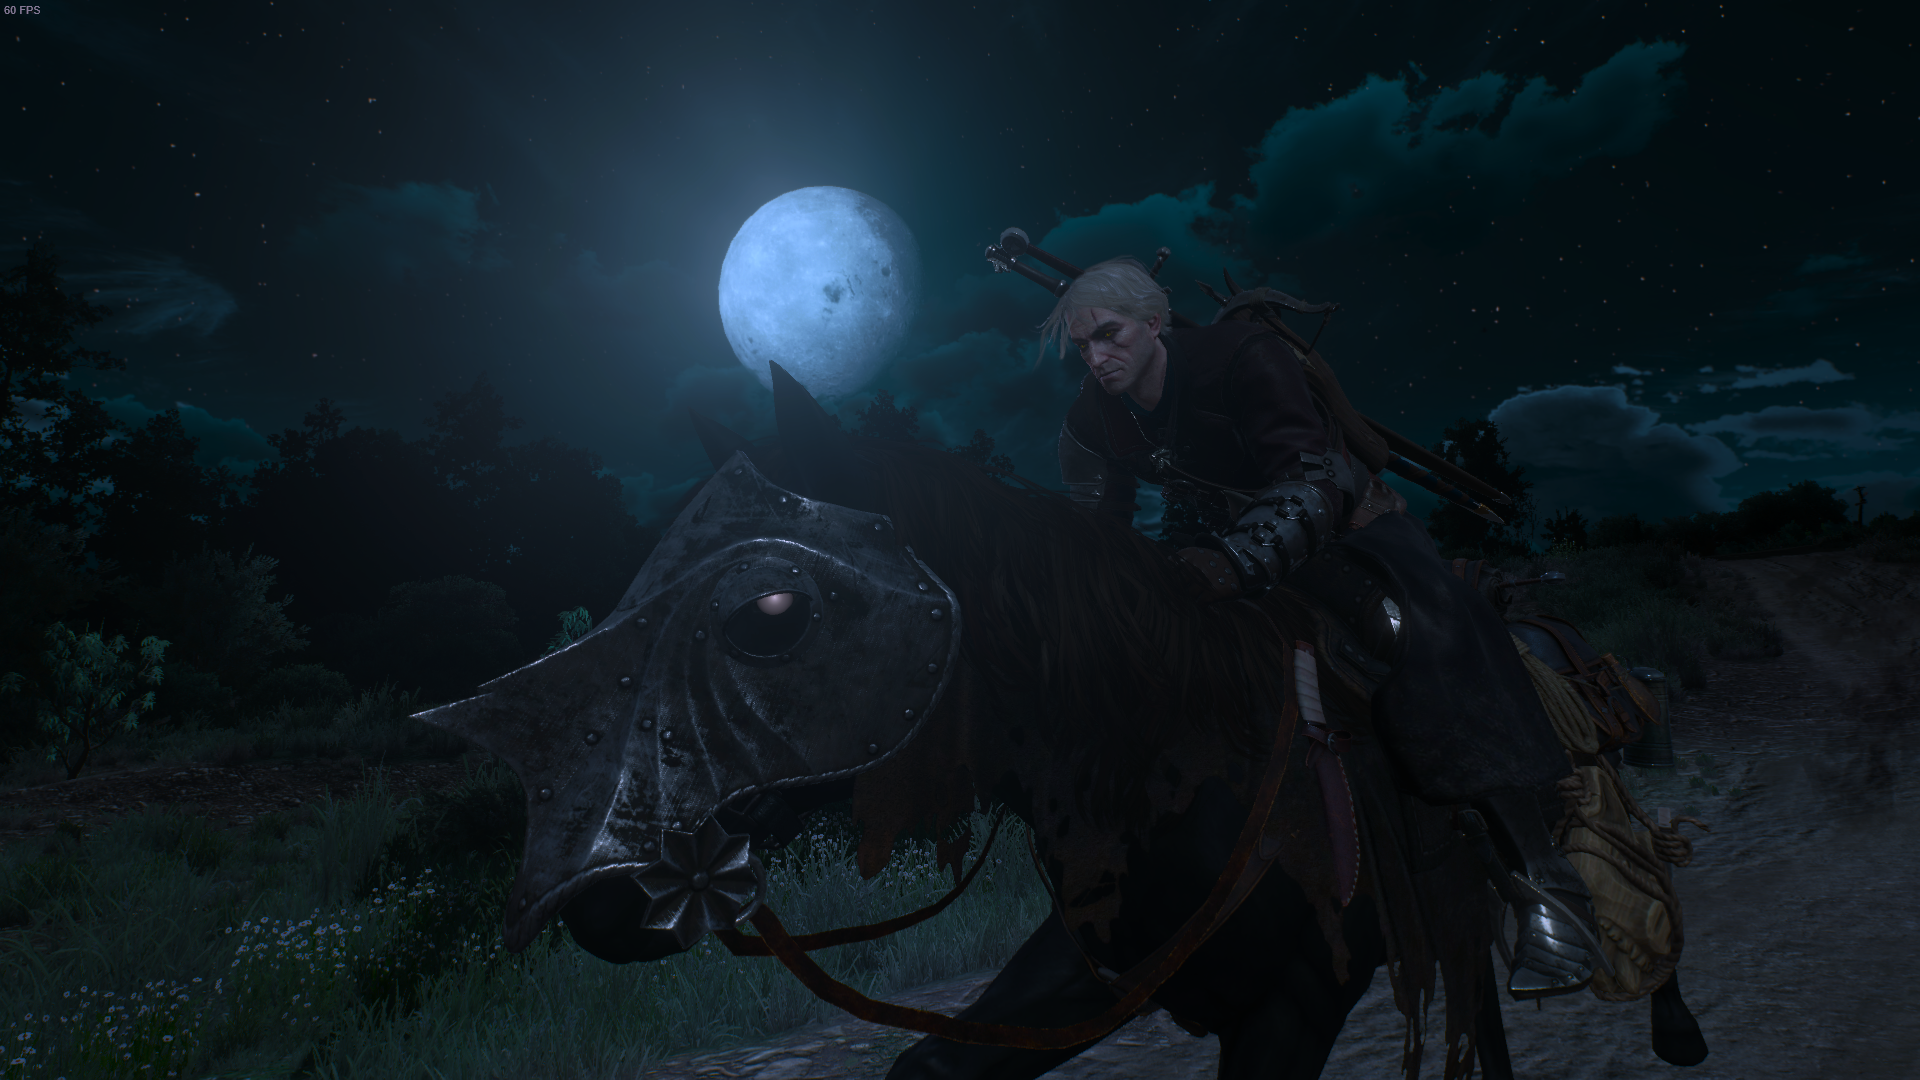 Ger - The Witcher 3: Wild Hunt